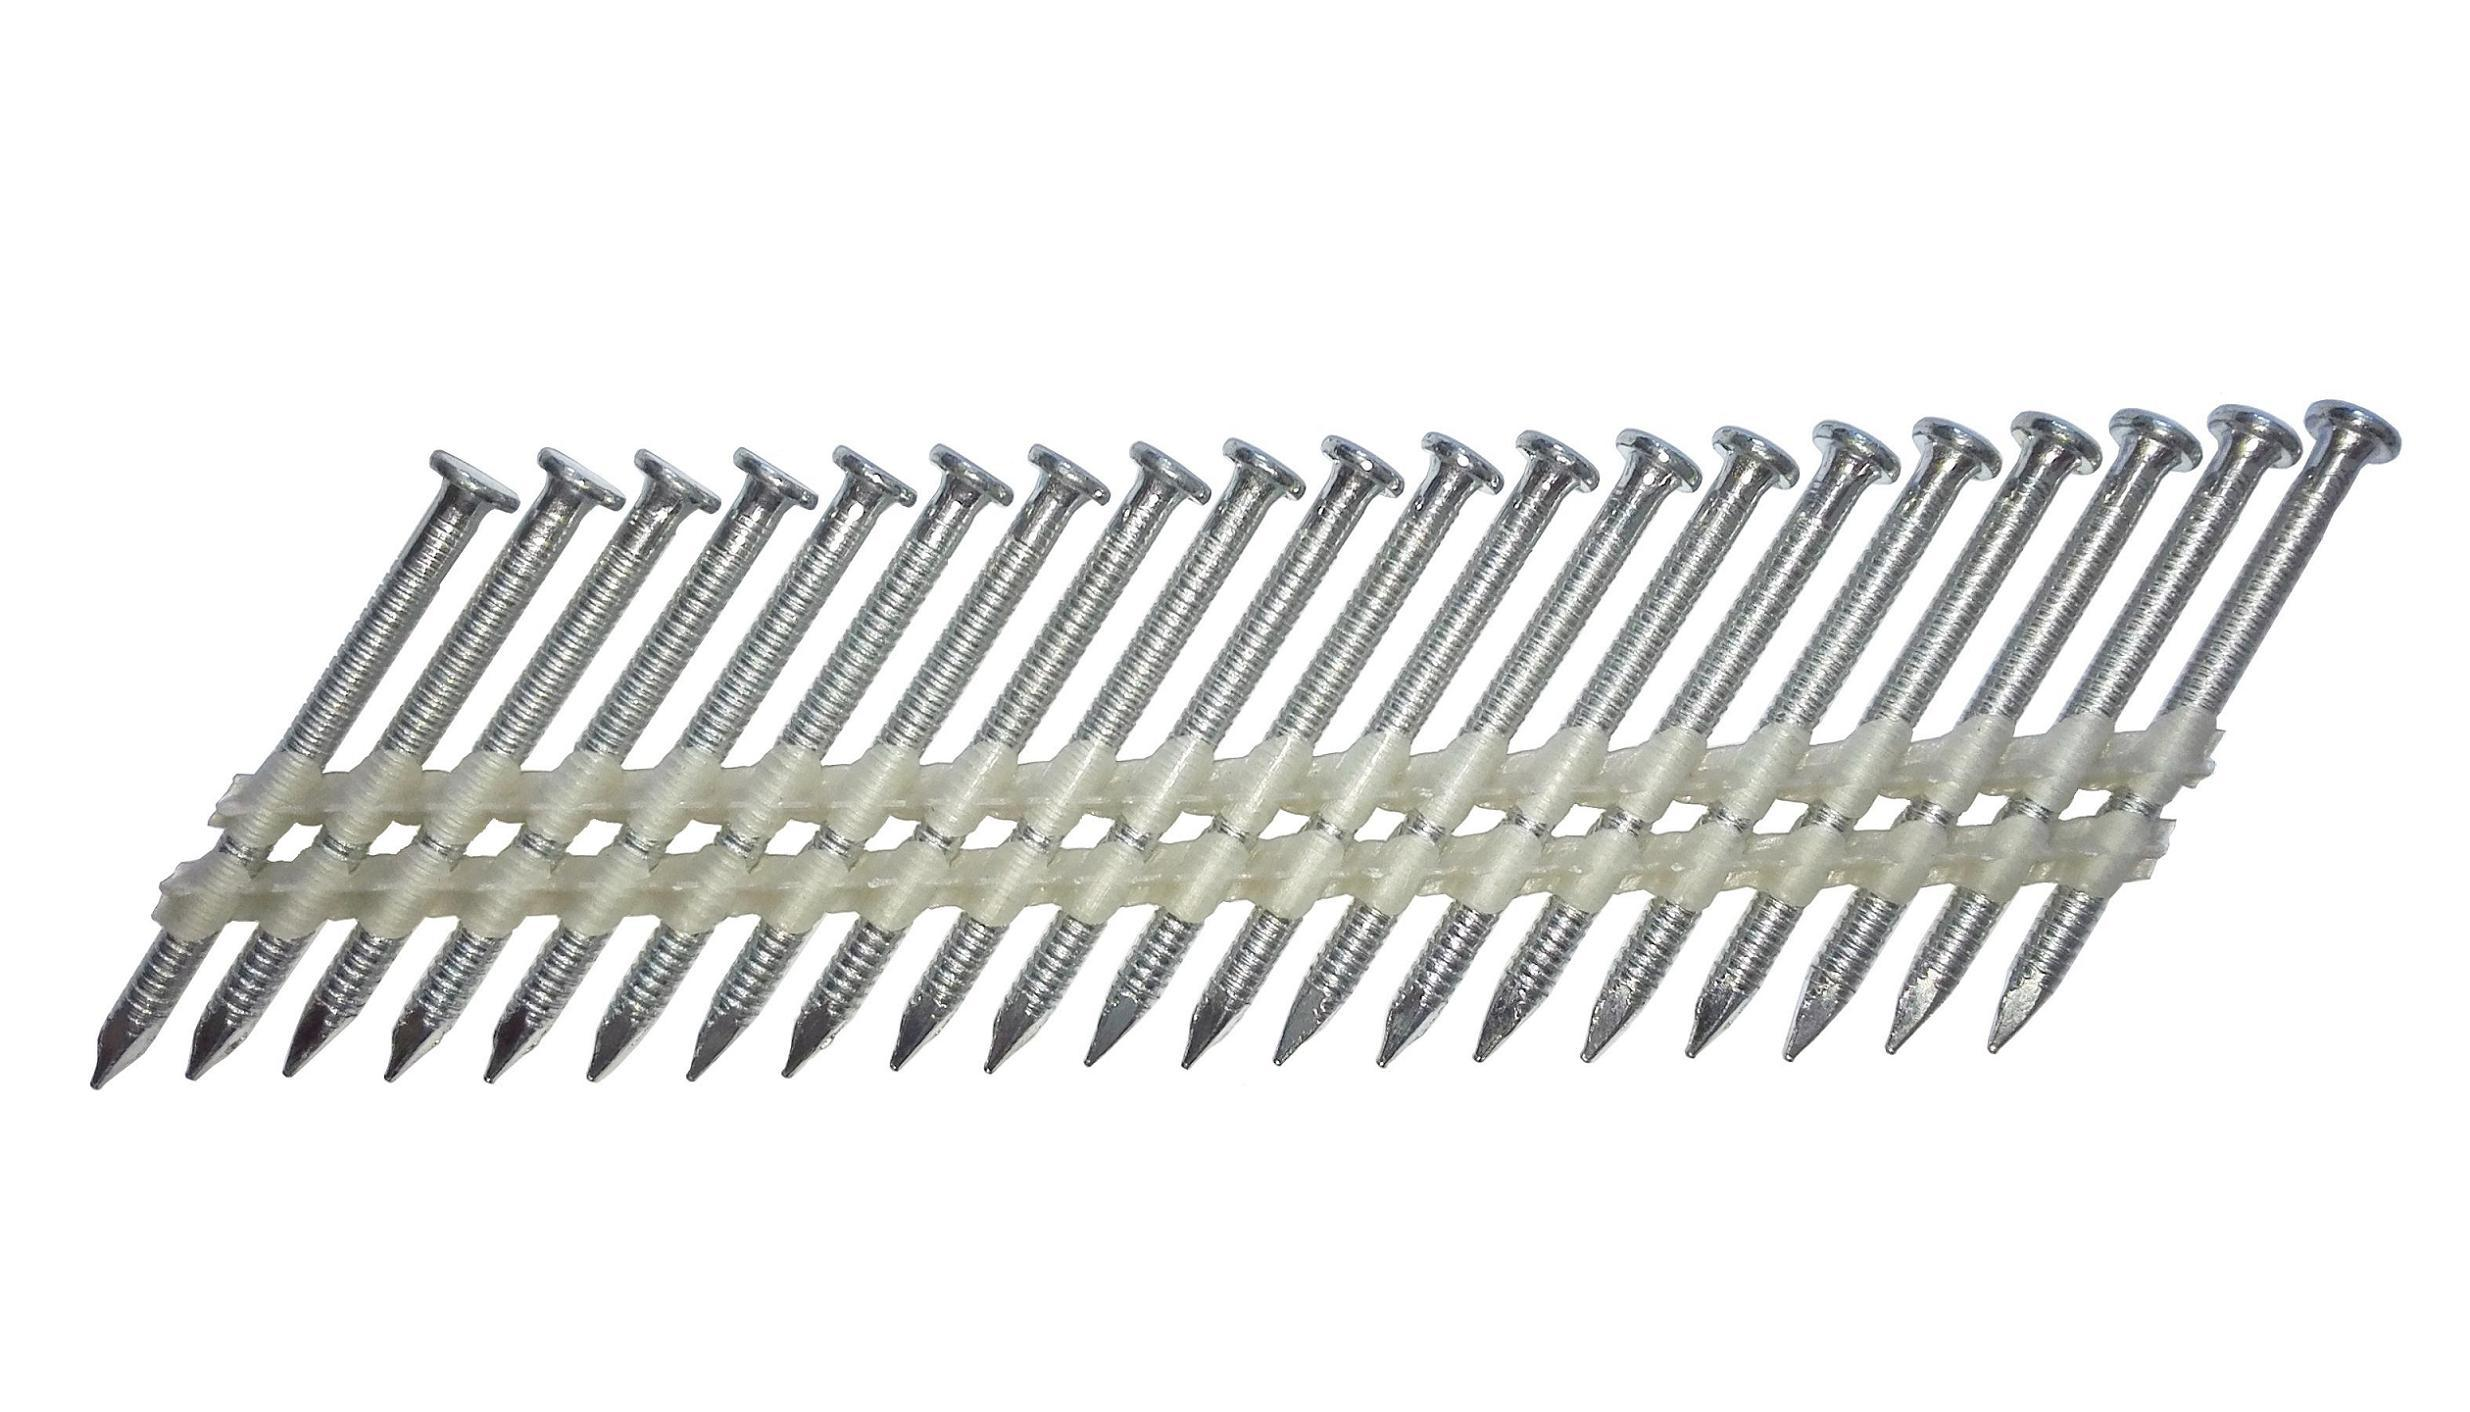 4.0 X 50mm Anchor Nails Plastic Strip Collated 34 Degree, 2000 Nails/Box